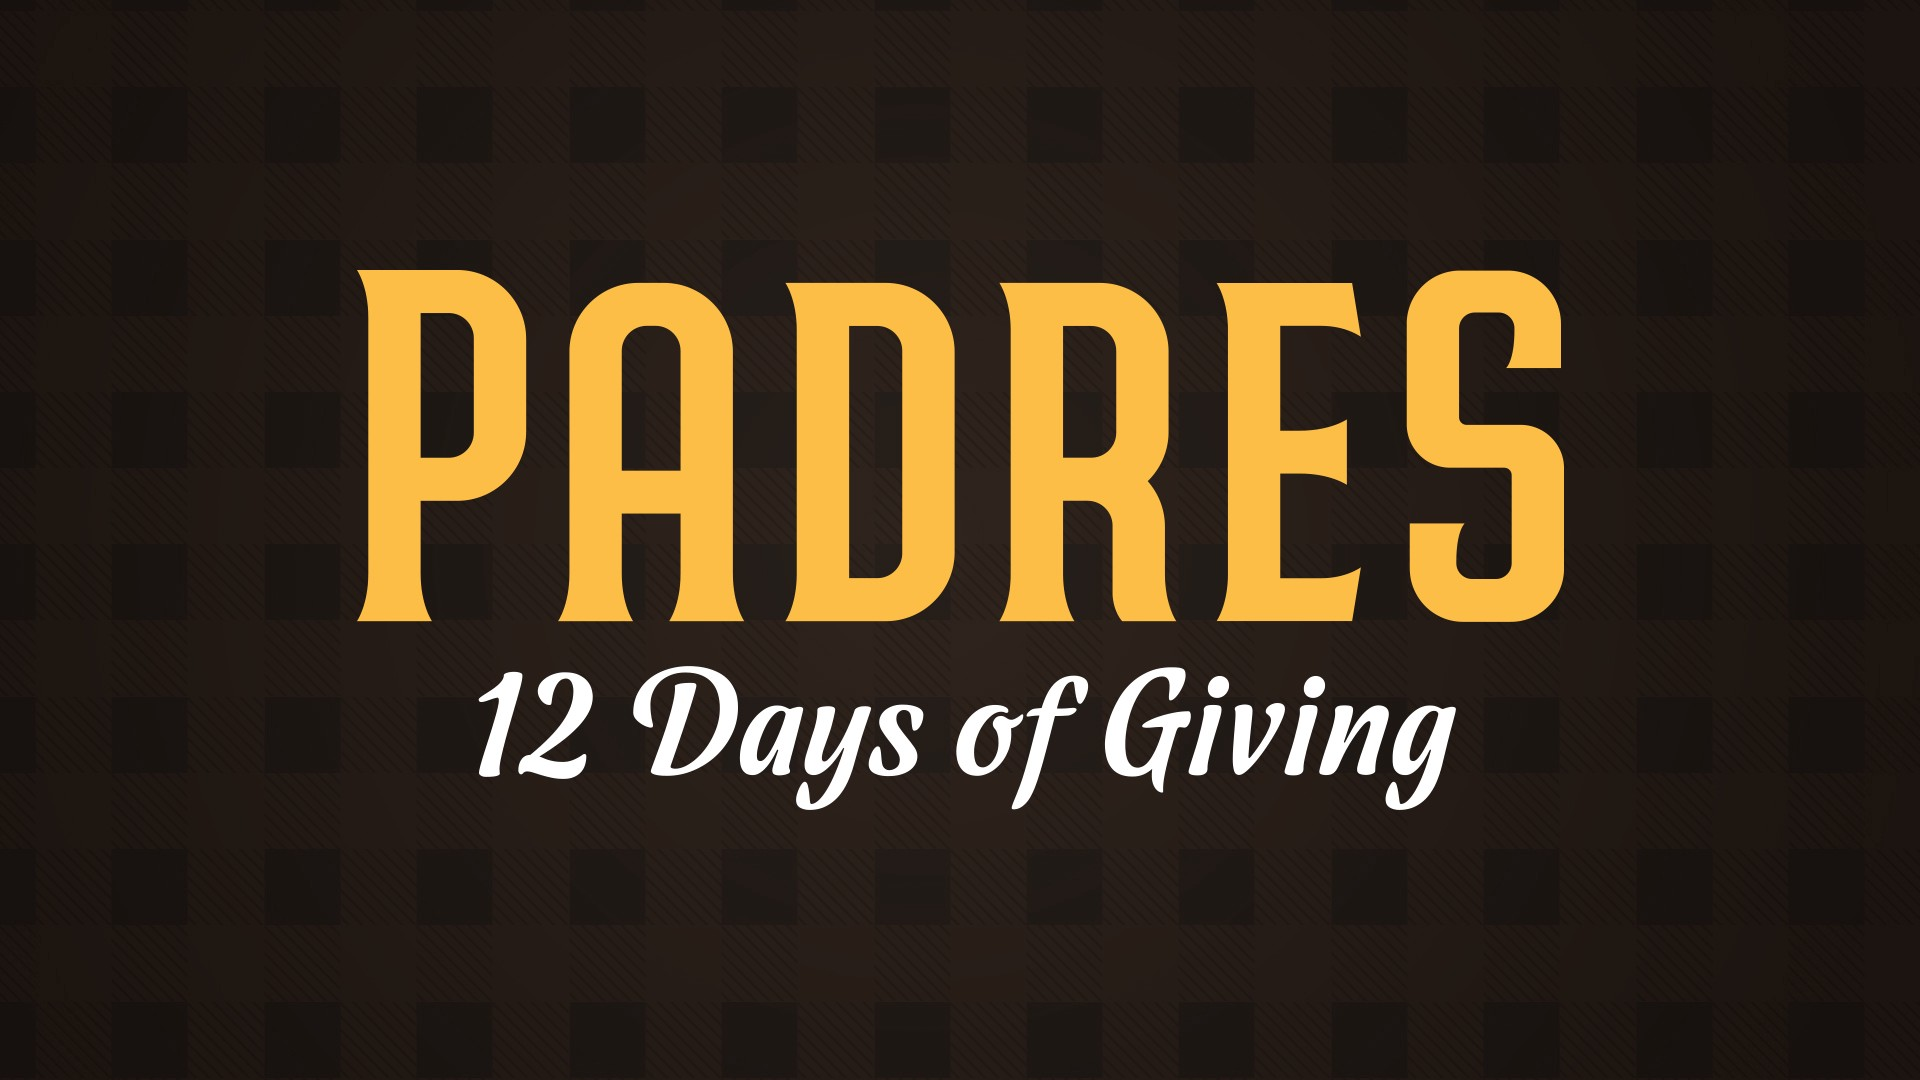 Padres Holiday Giving Tour Set To Return In 2019 By Friarwire Friarwire